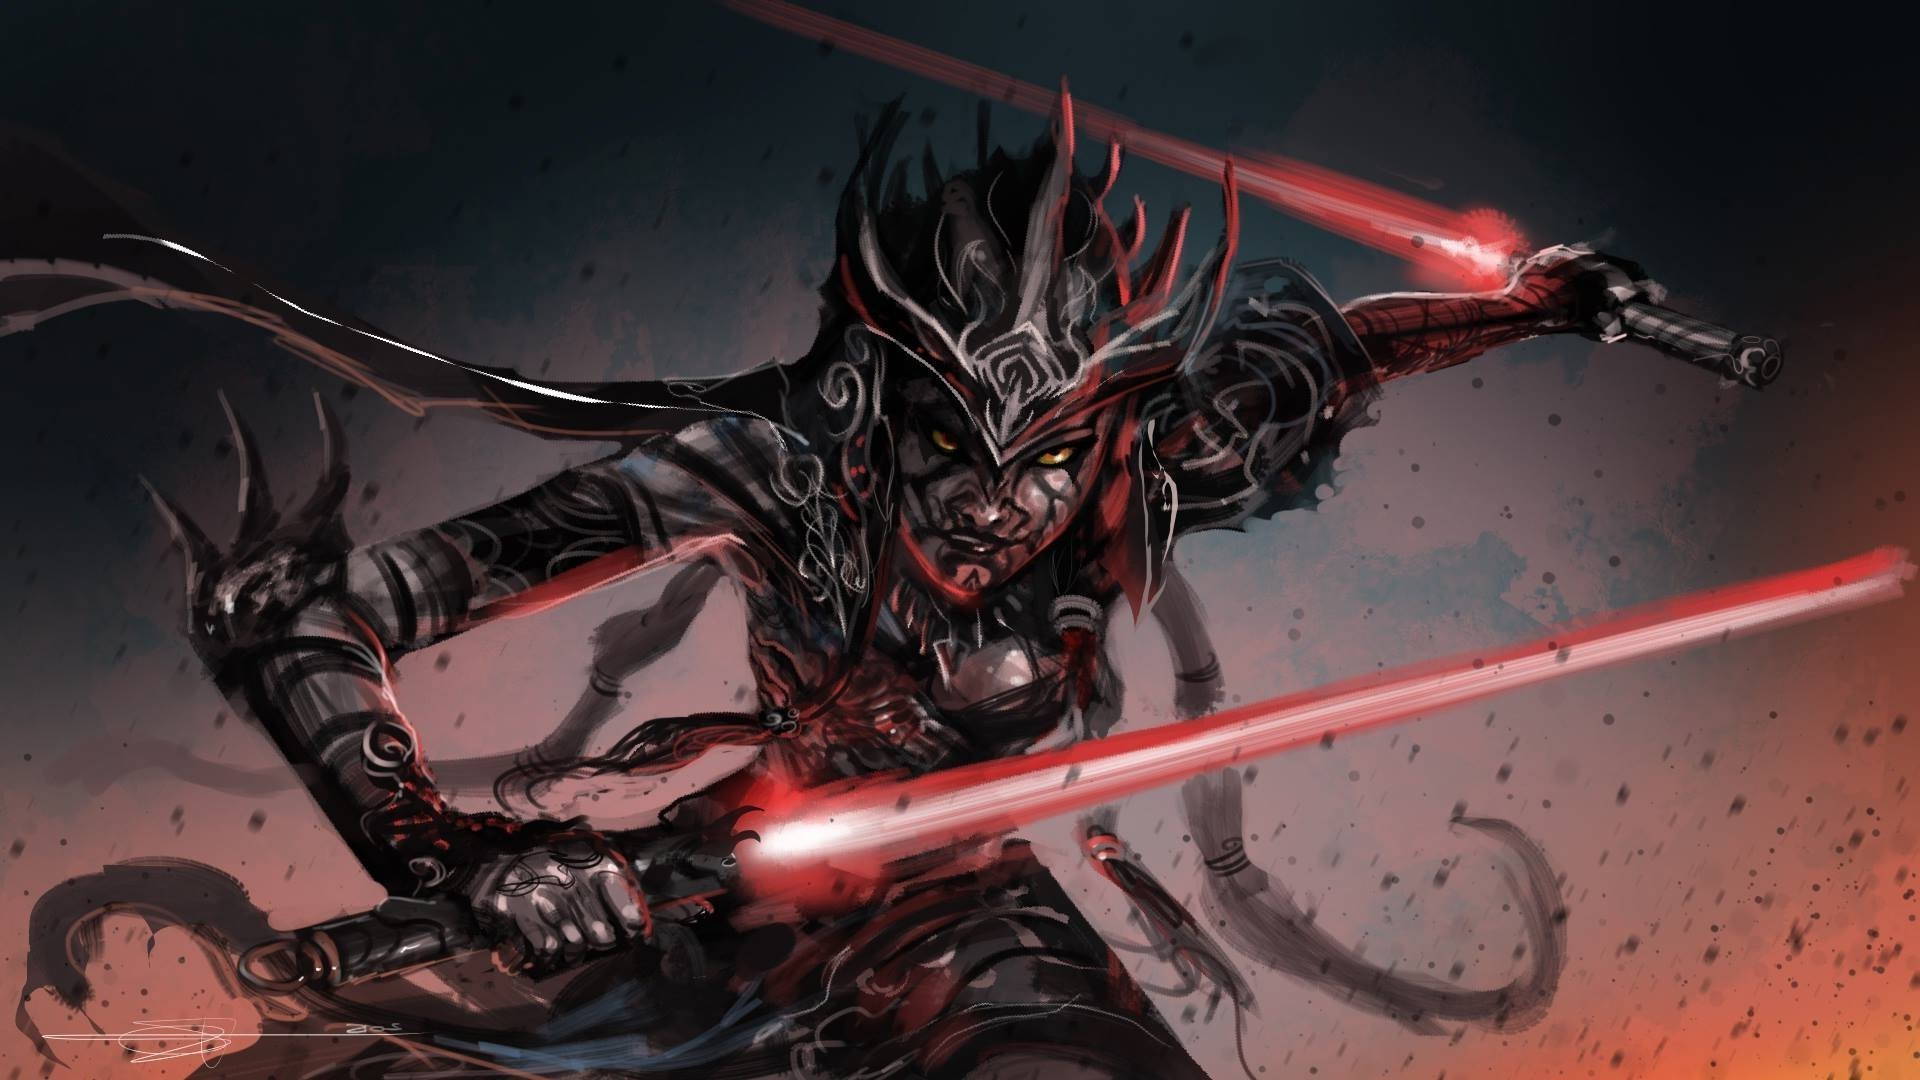 1920x1080 artwork, Fantasy Art, Star Wars, Lightsaber, Sith Wallpapers HD / Desktop  and Mobile Backgrounds